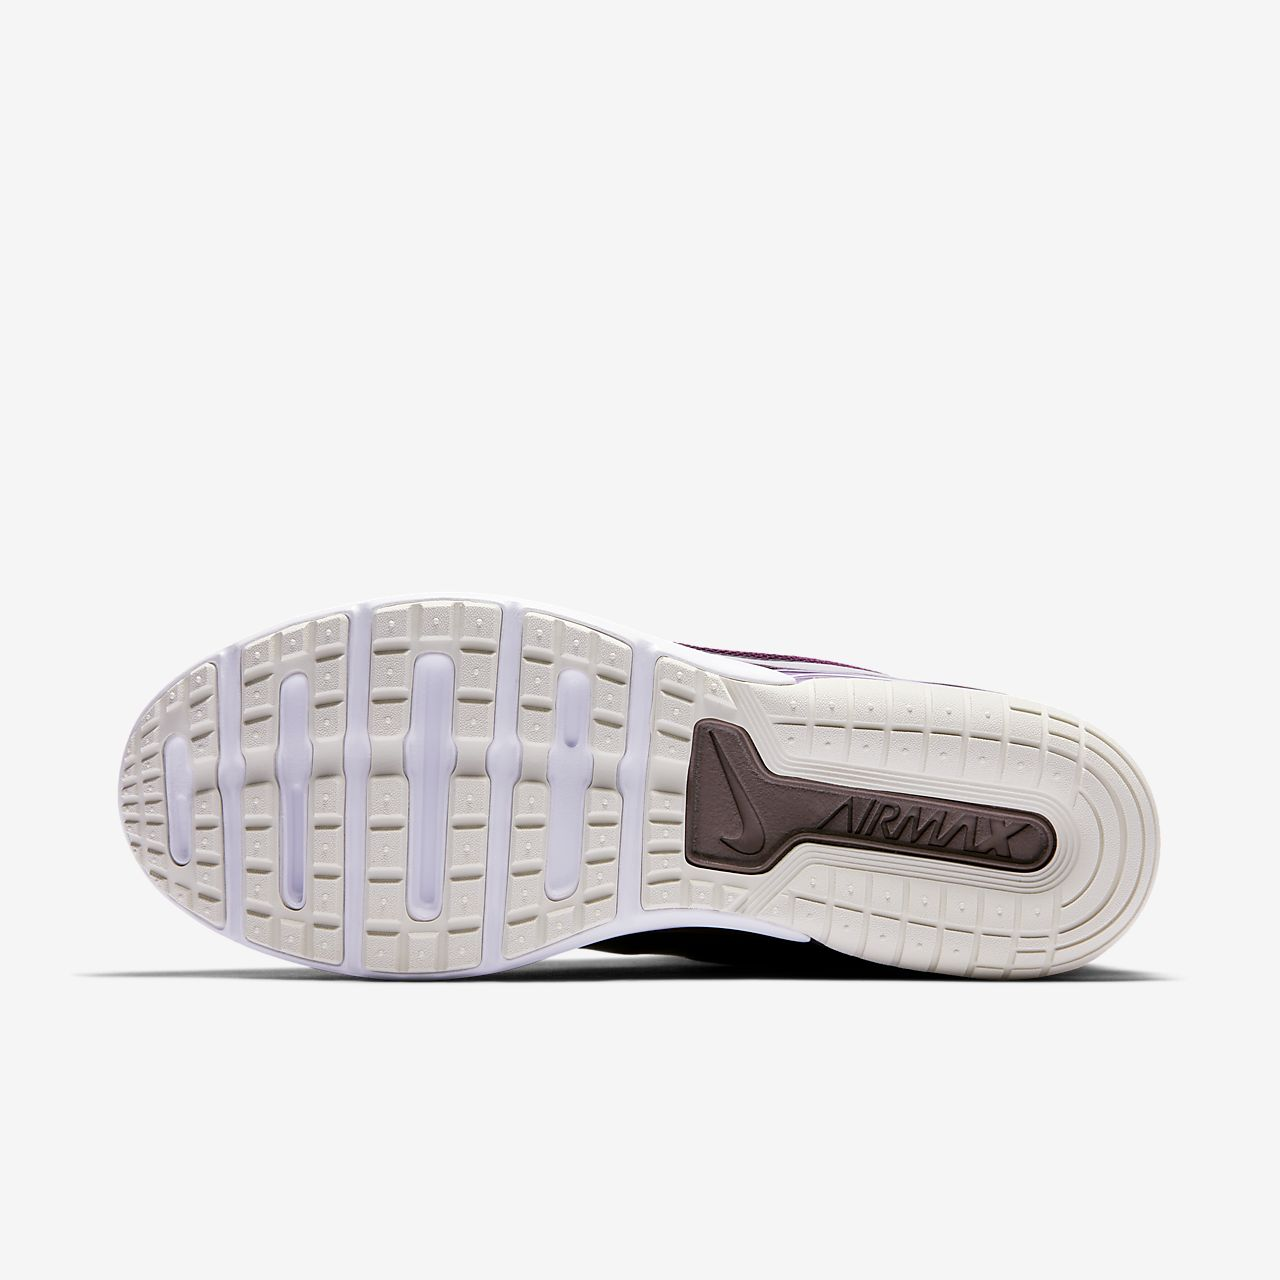 Nike Air Max Thea Taupe Grey Port Wine White Trainers Sale